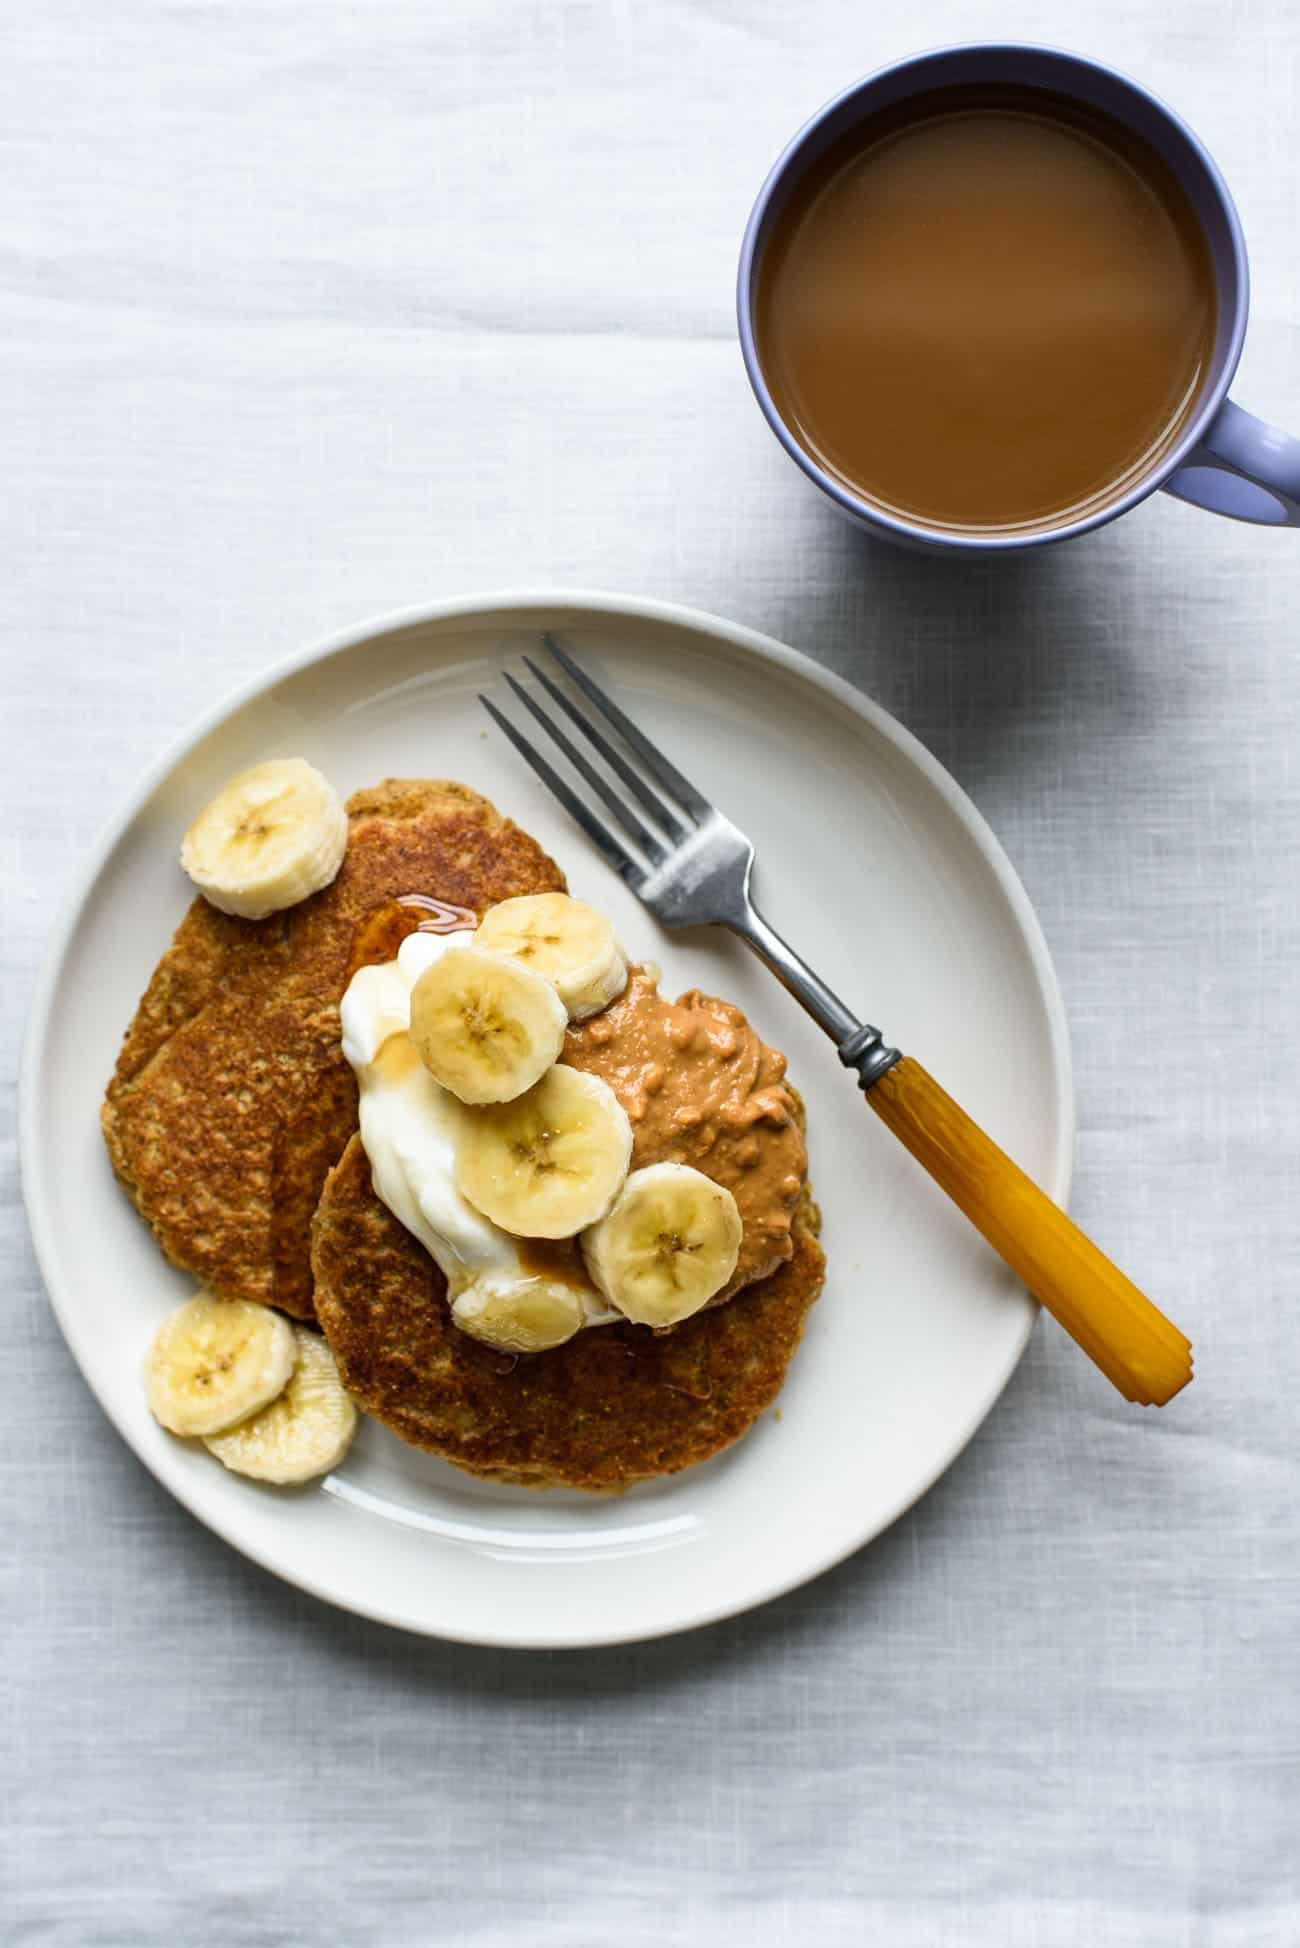 Cornmeal pancakes (made from a homemade vegan pancake mix) topped with yogurt, bananas, and peanut butter